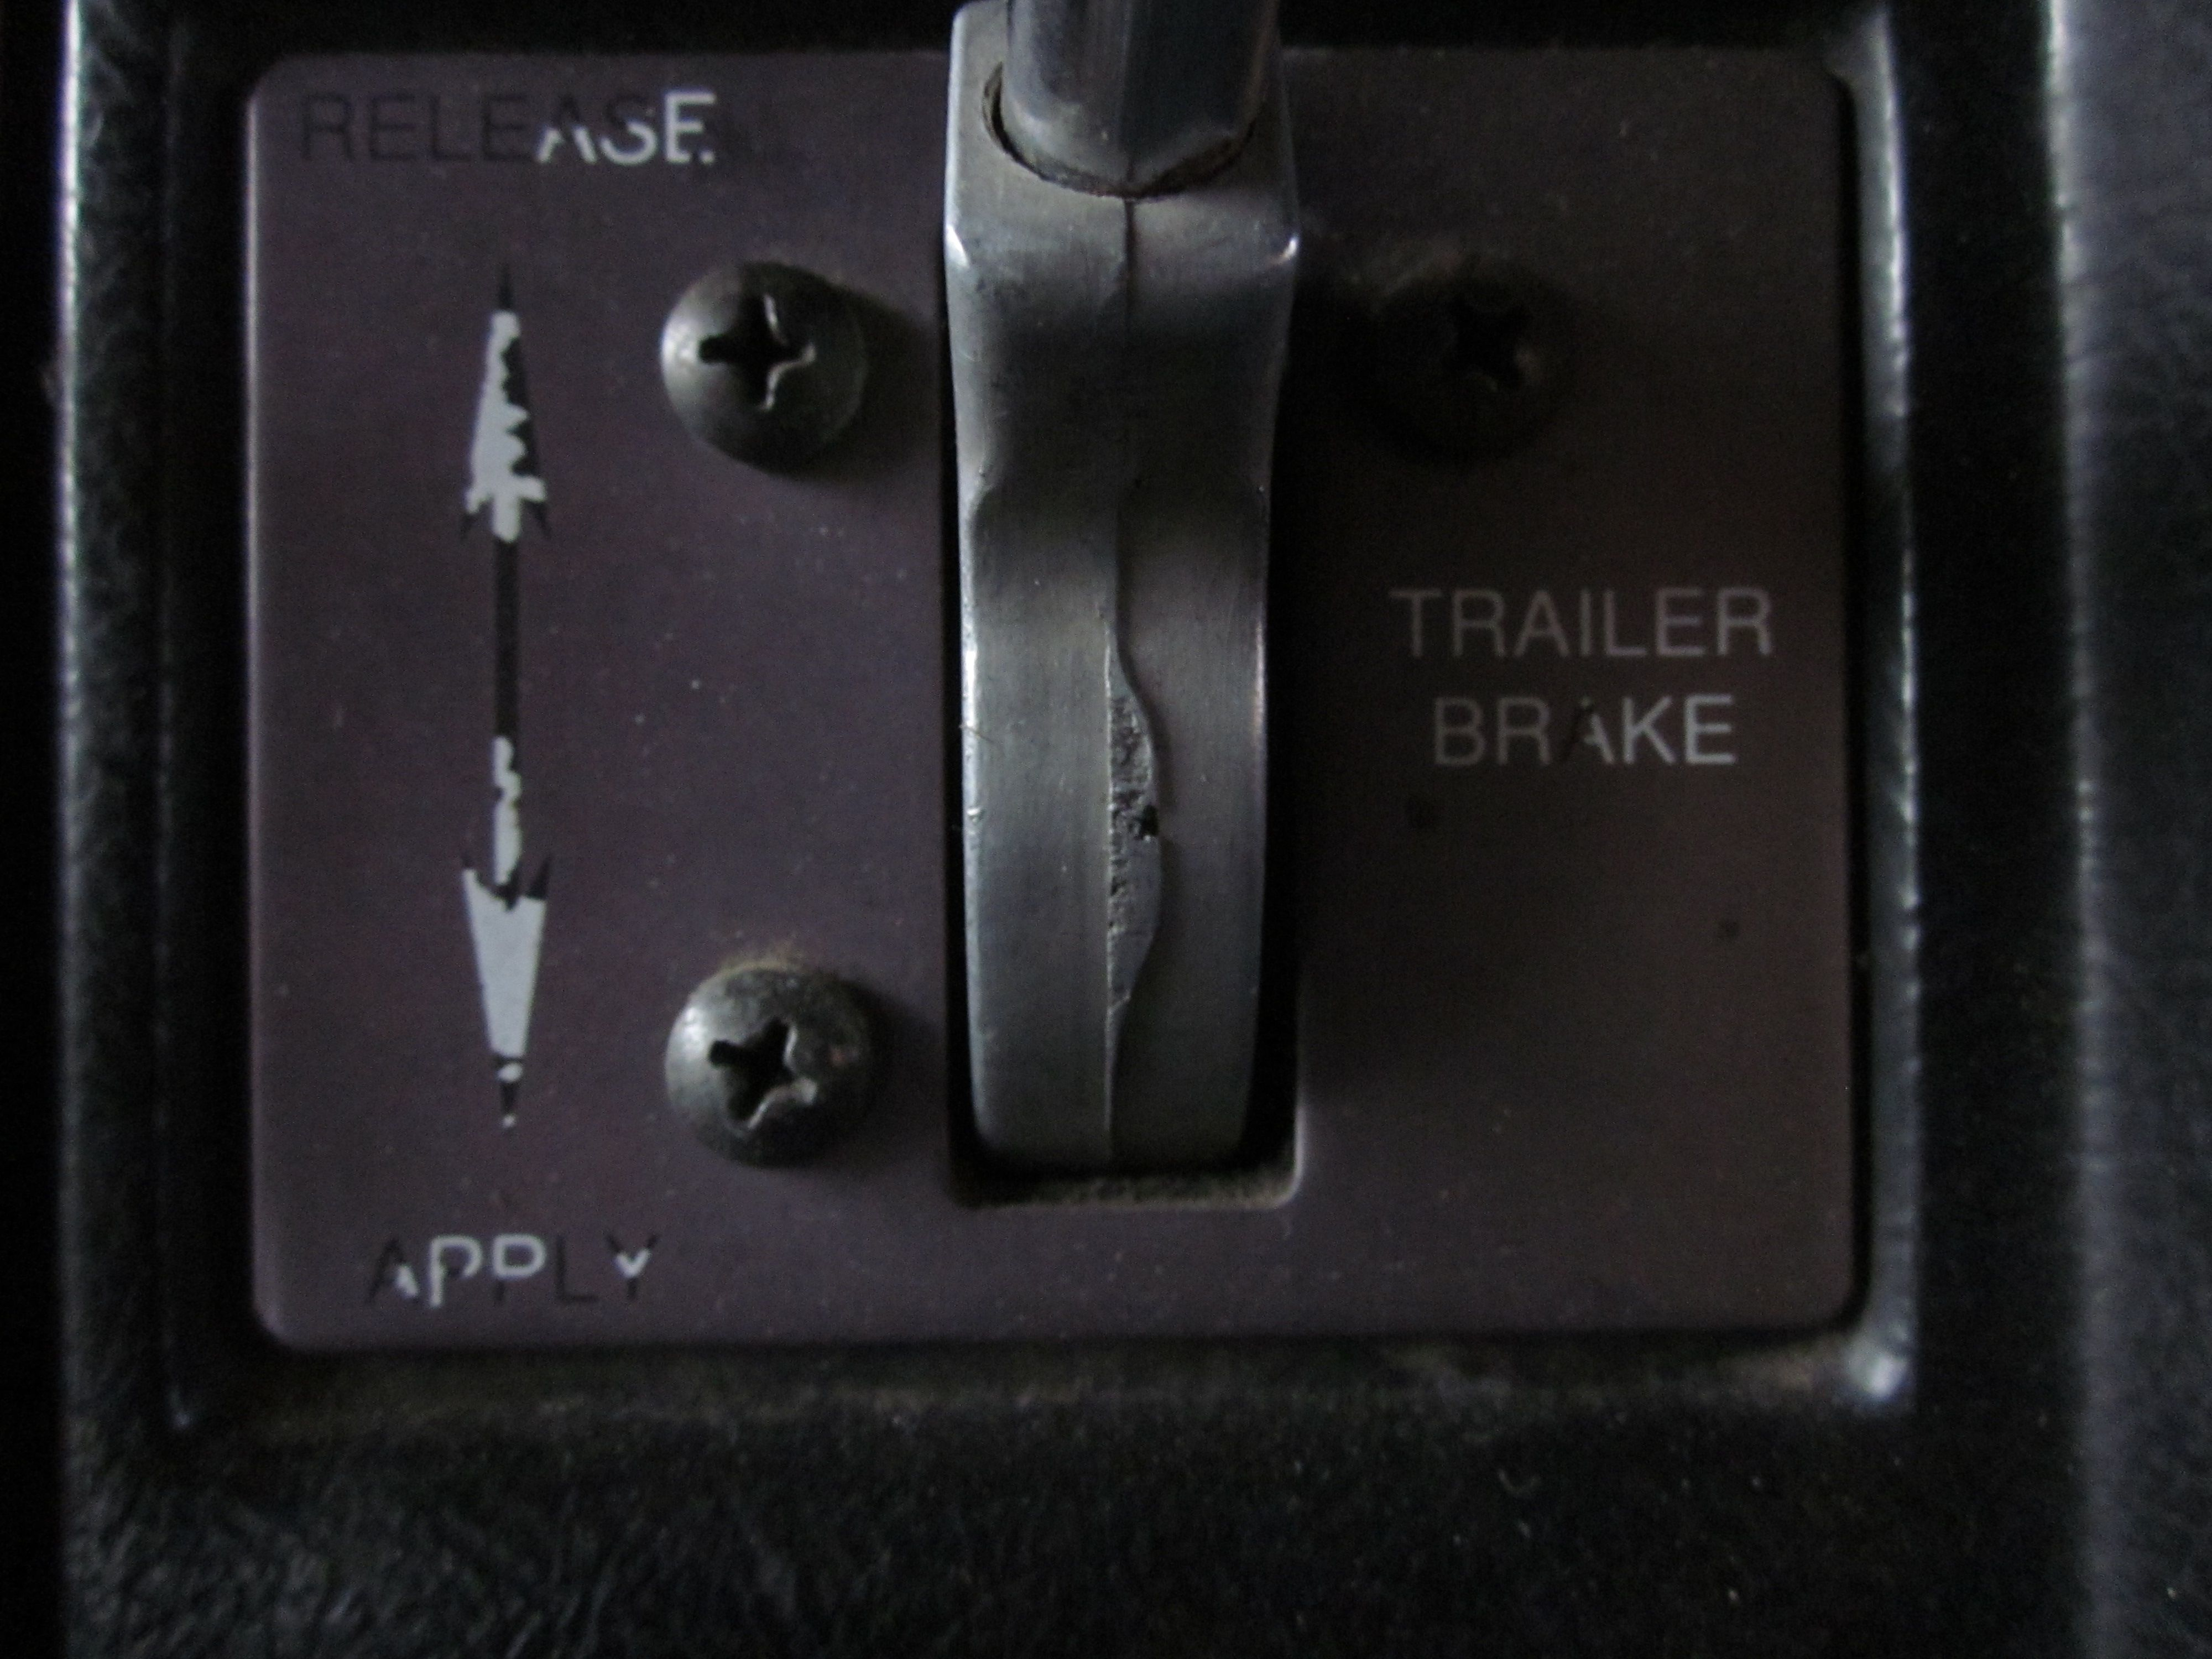 Trolley Valve or Trailer Air Brake used to check fifth